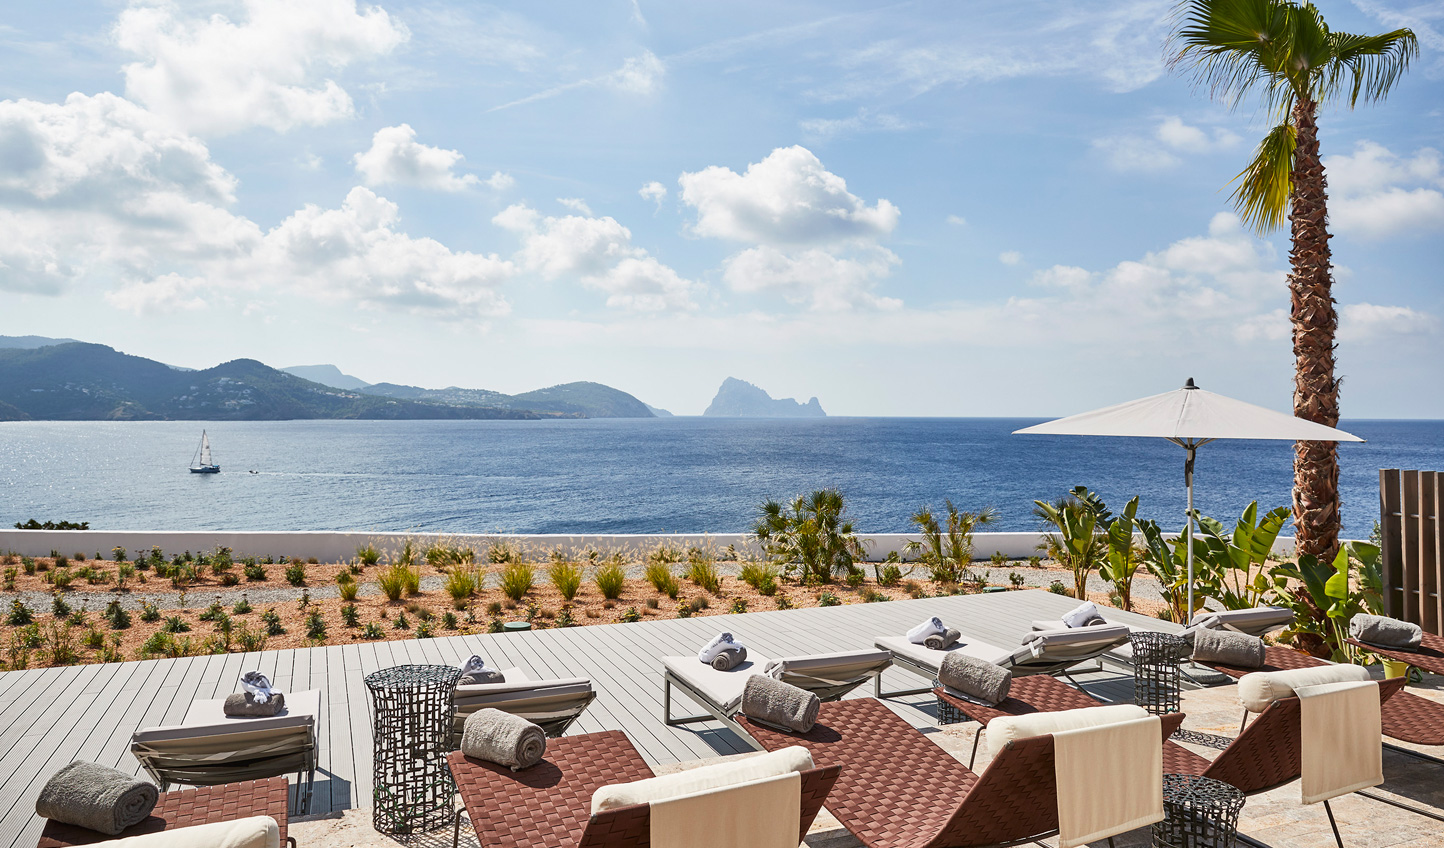 Feel the magic of Es Vedra on a visit to Pure Seven Spa